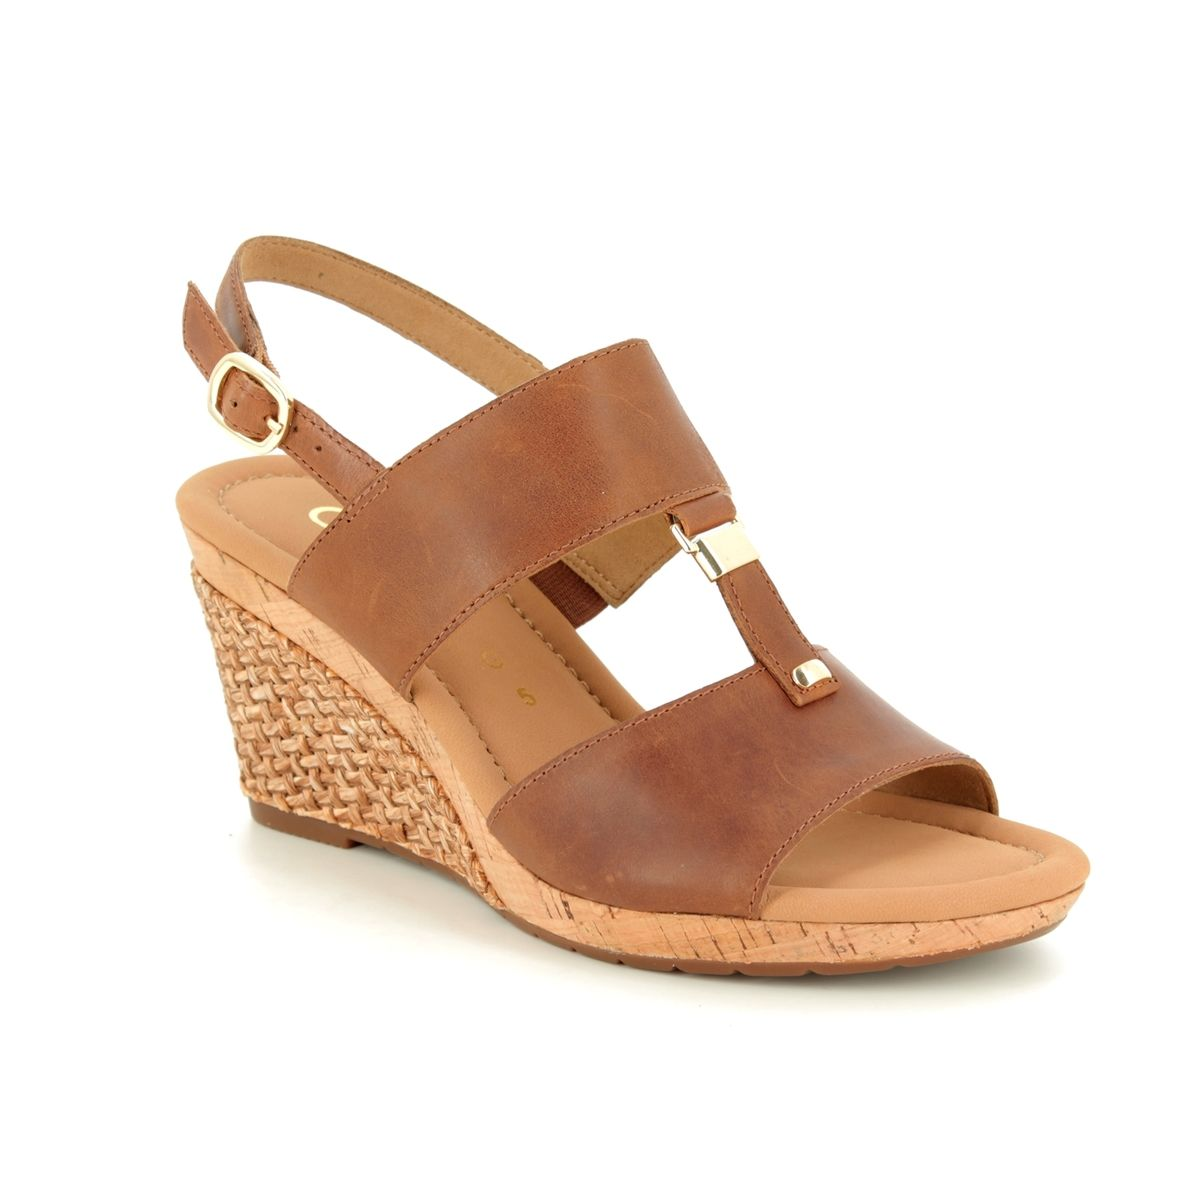 e80abeafa4 Gabor Wedge Sandals - Tan - 22.827.54 KEIRA